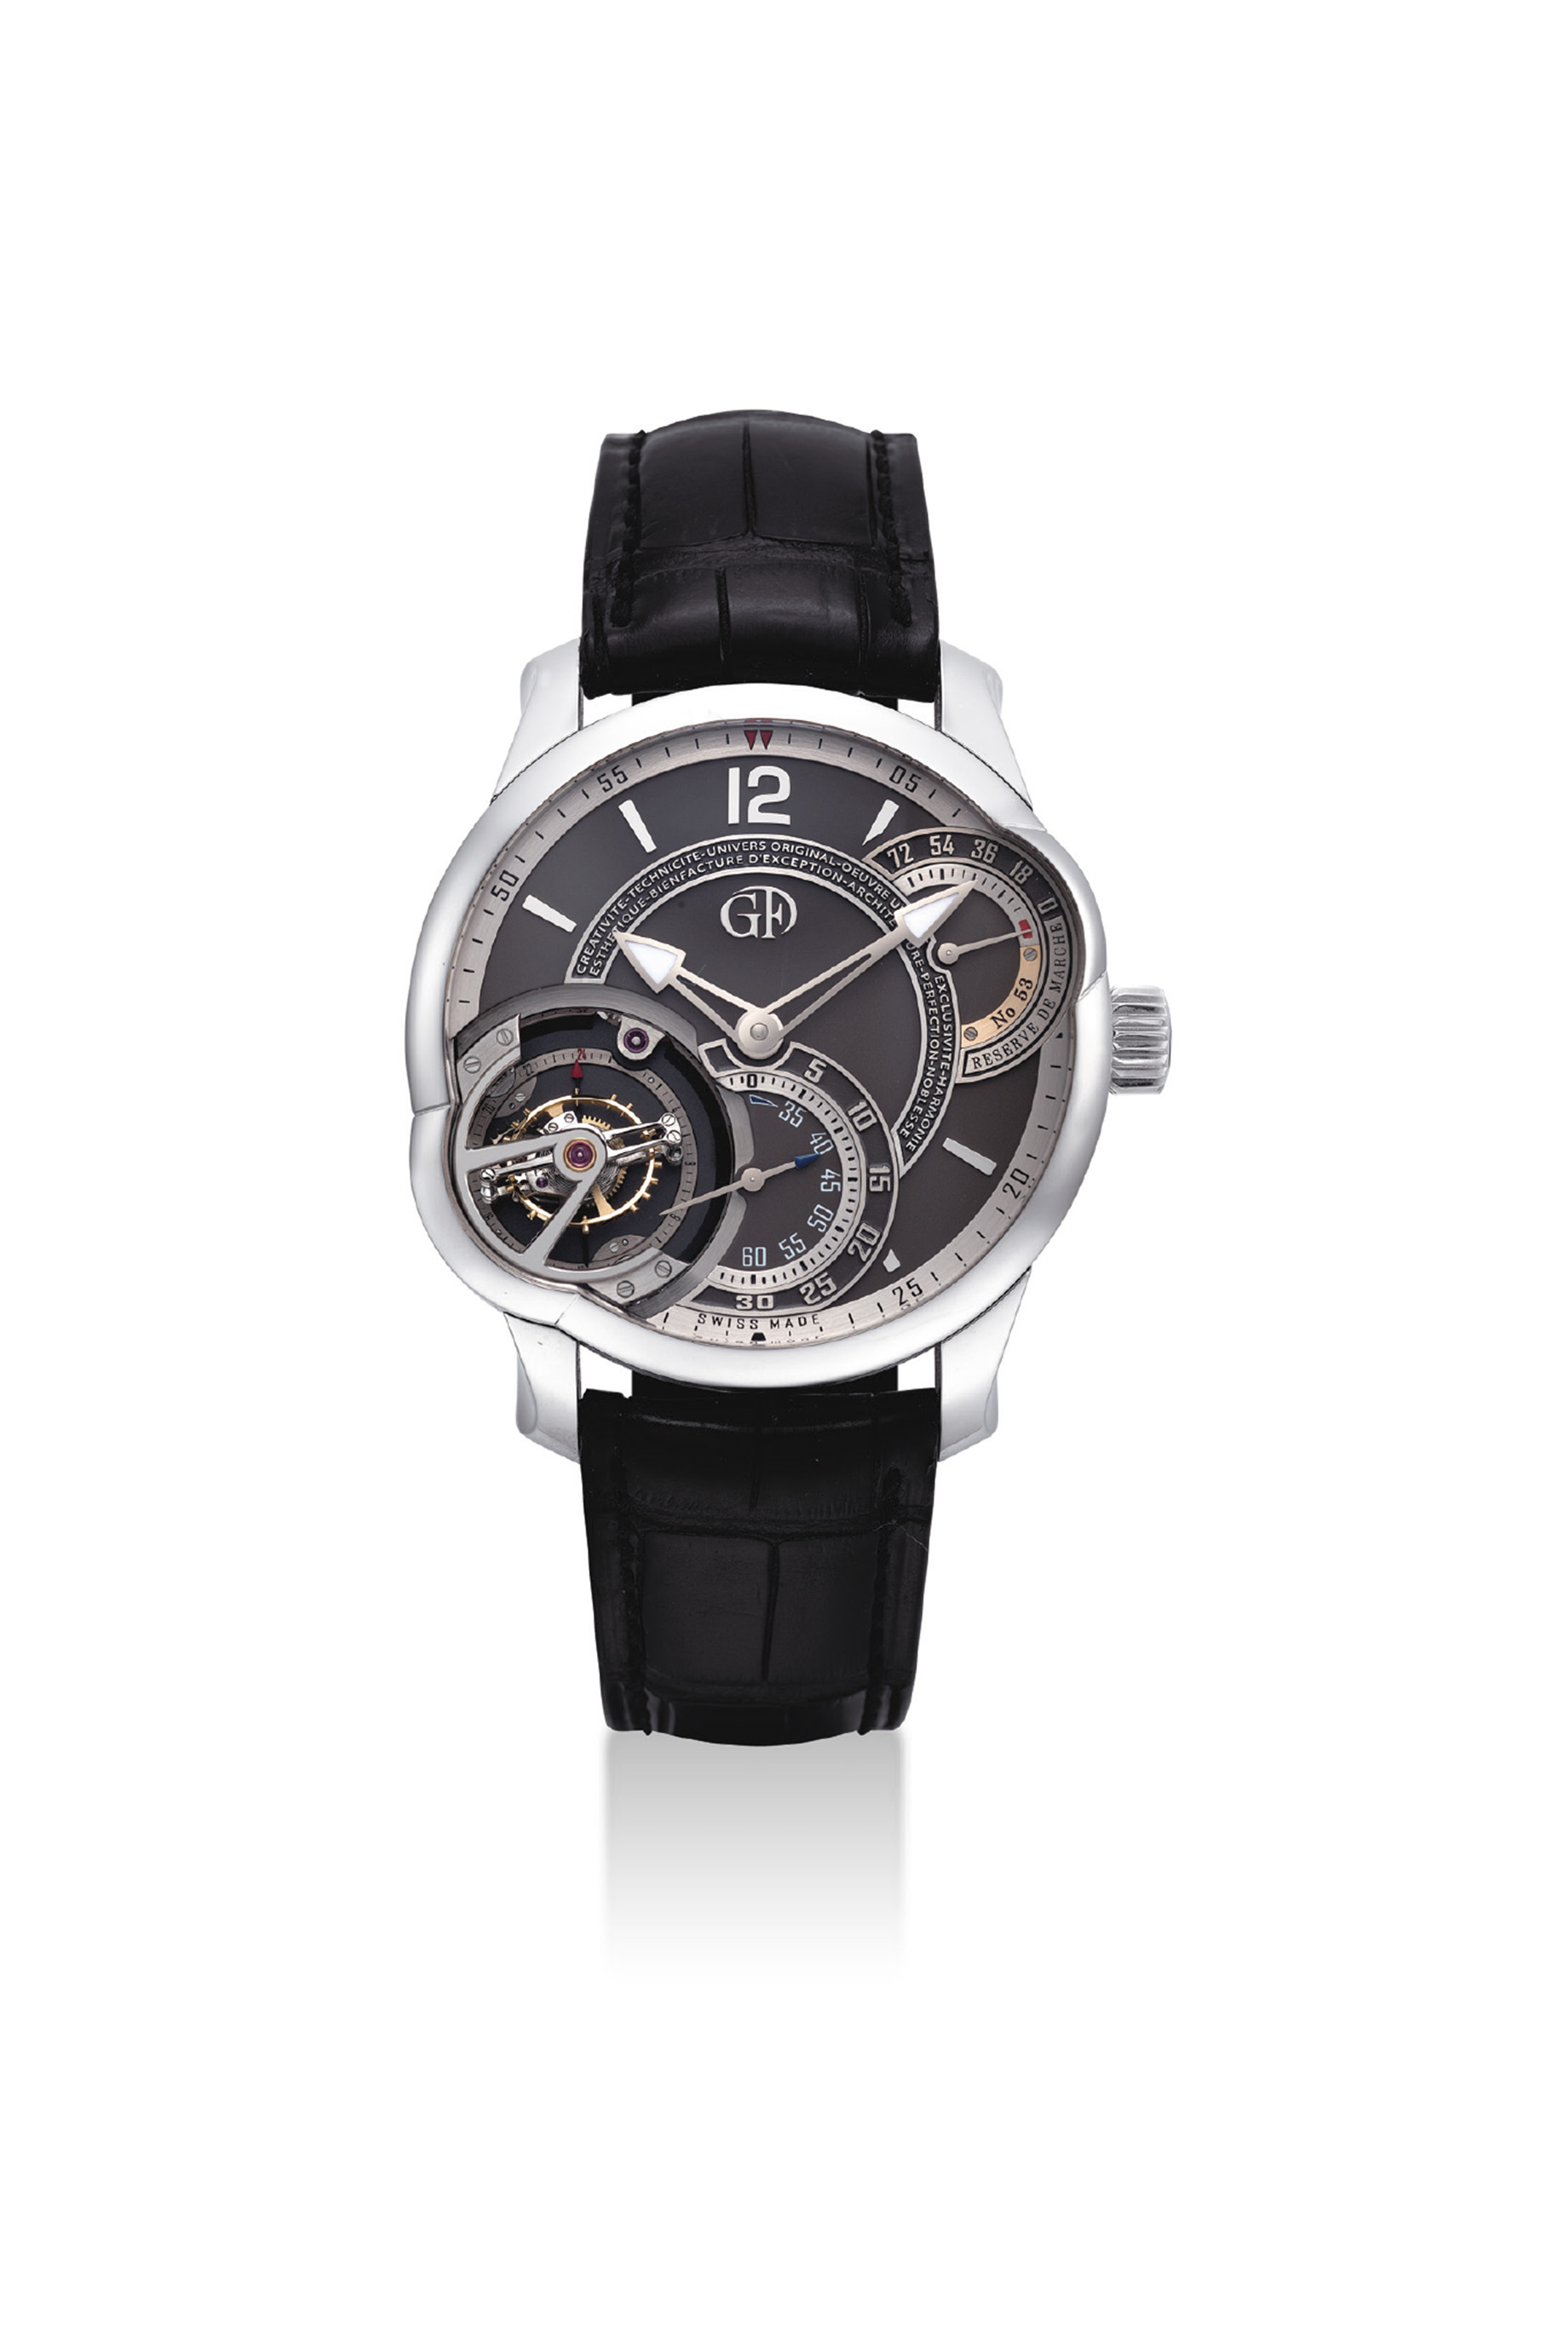 GREUBEL FORSEY. A VERY FINE, IMPORTANT AND VERY RARE PLATINUM ASYMMETRICAL 25° INCLINED 24 SECONDS TOURBILLON WRISTWATCH WITH 72 HOURS POWER RESERVE